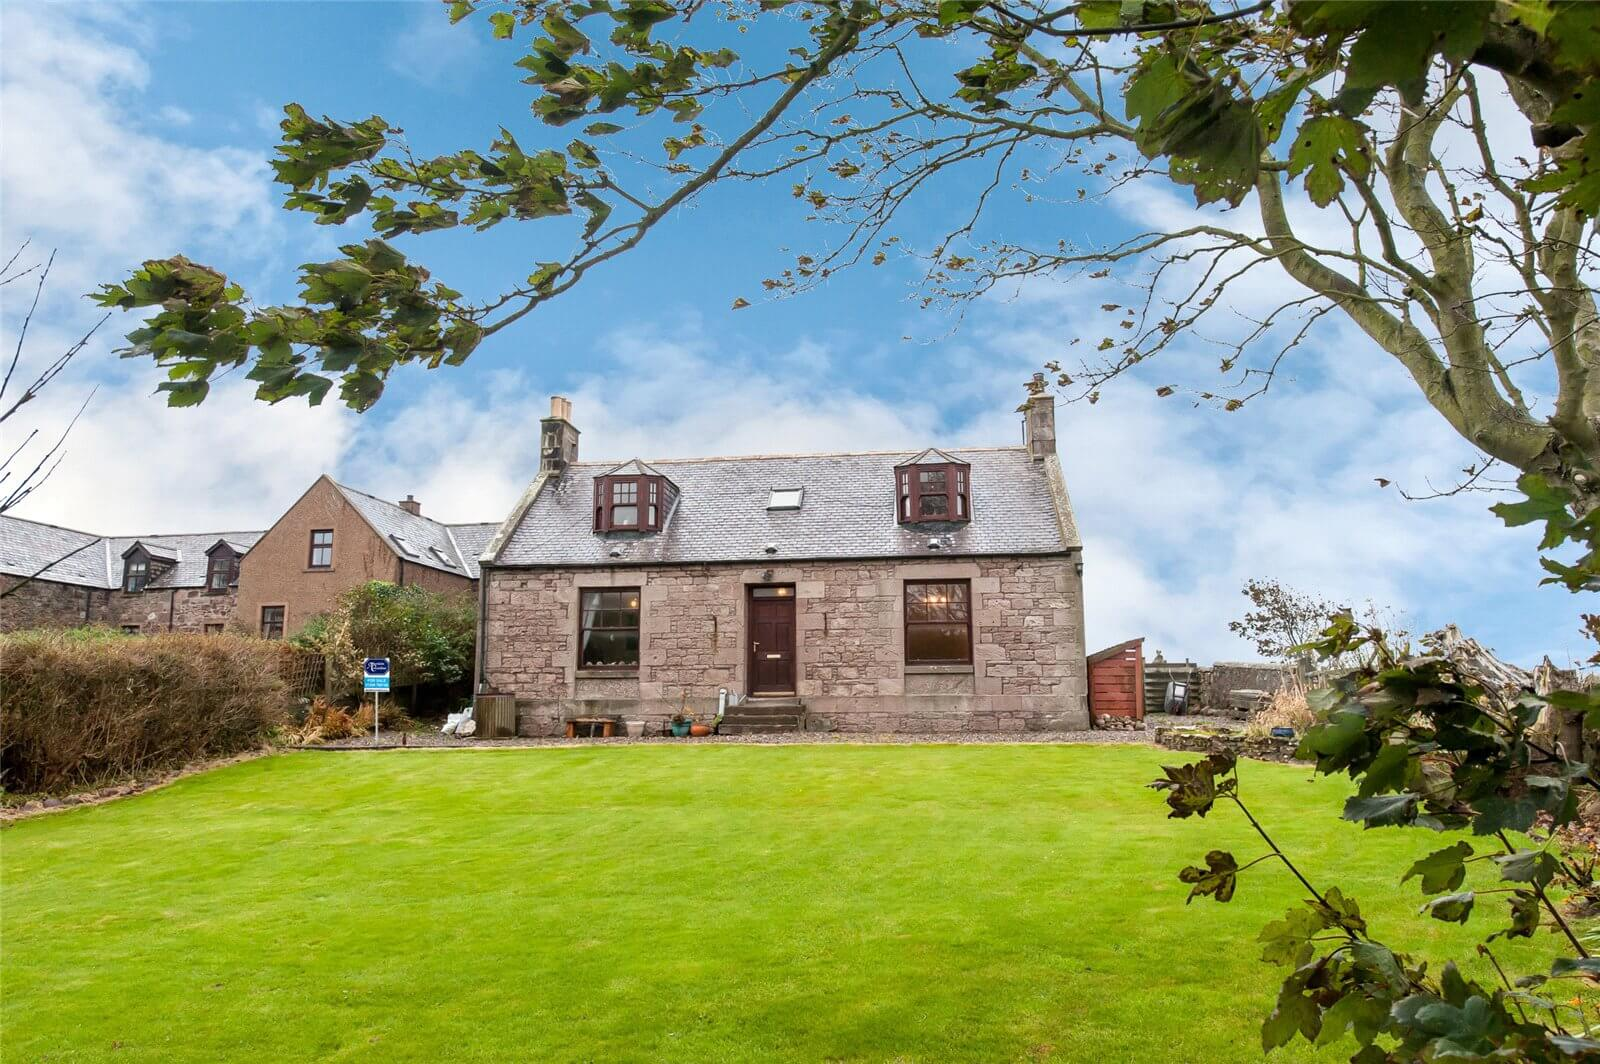 Massive saving on a detached farmhouse with spectacular views